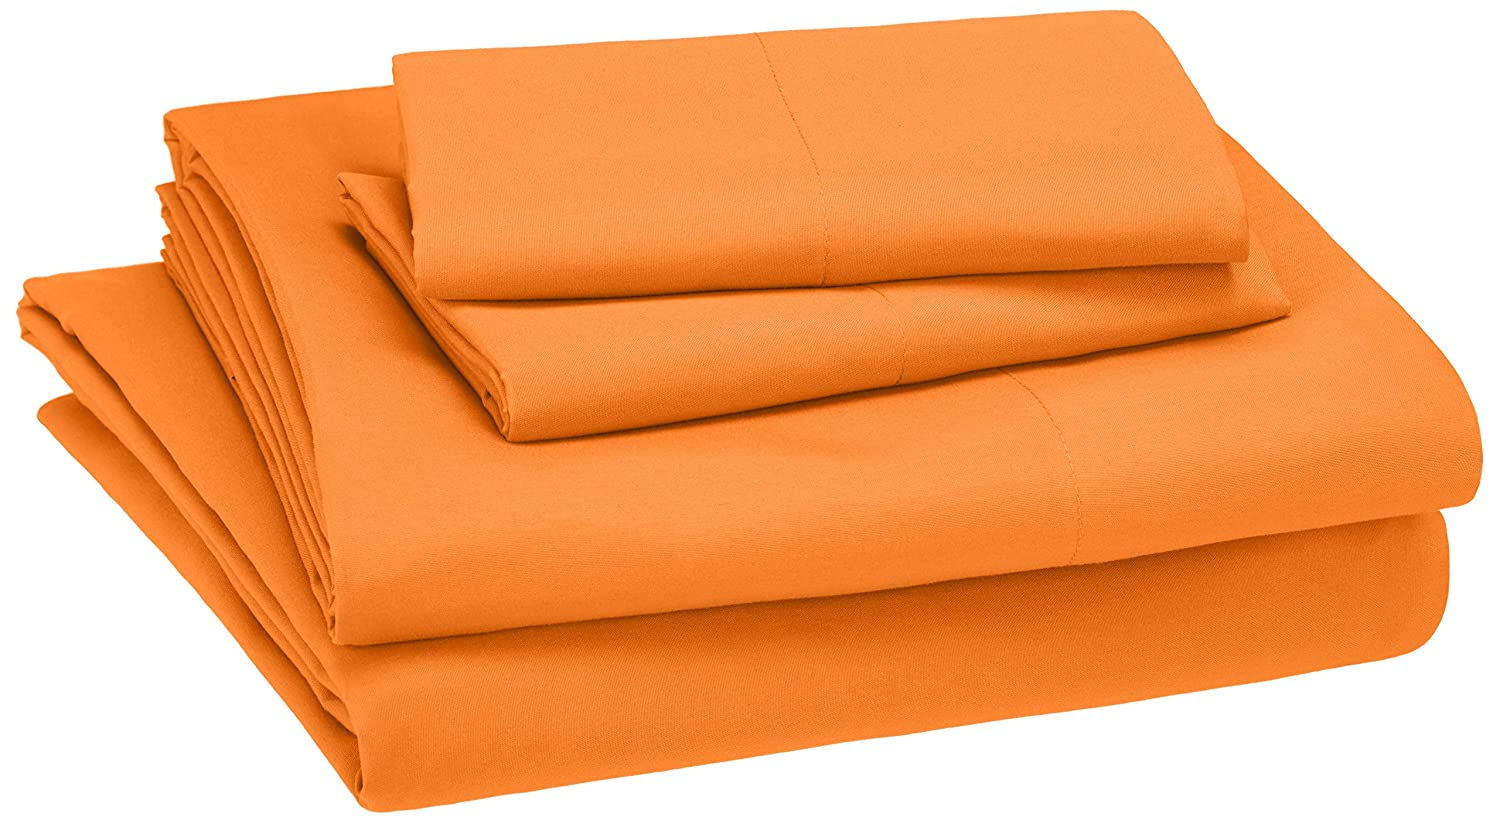 AmazonBasics Easy-Wash Microfiber Kid's Bedding Sheet Set - Queen, Bright Orange